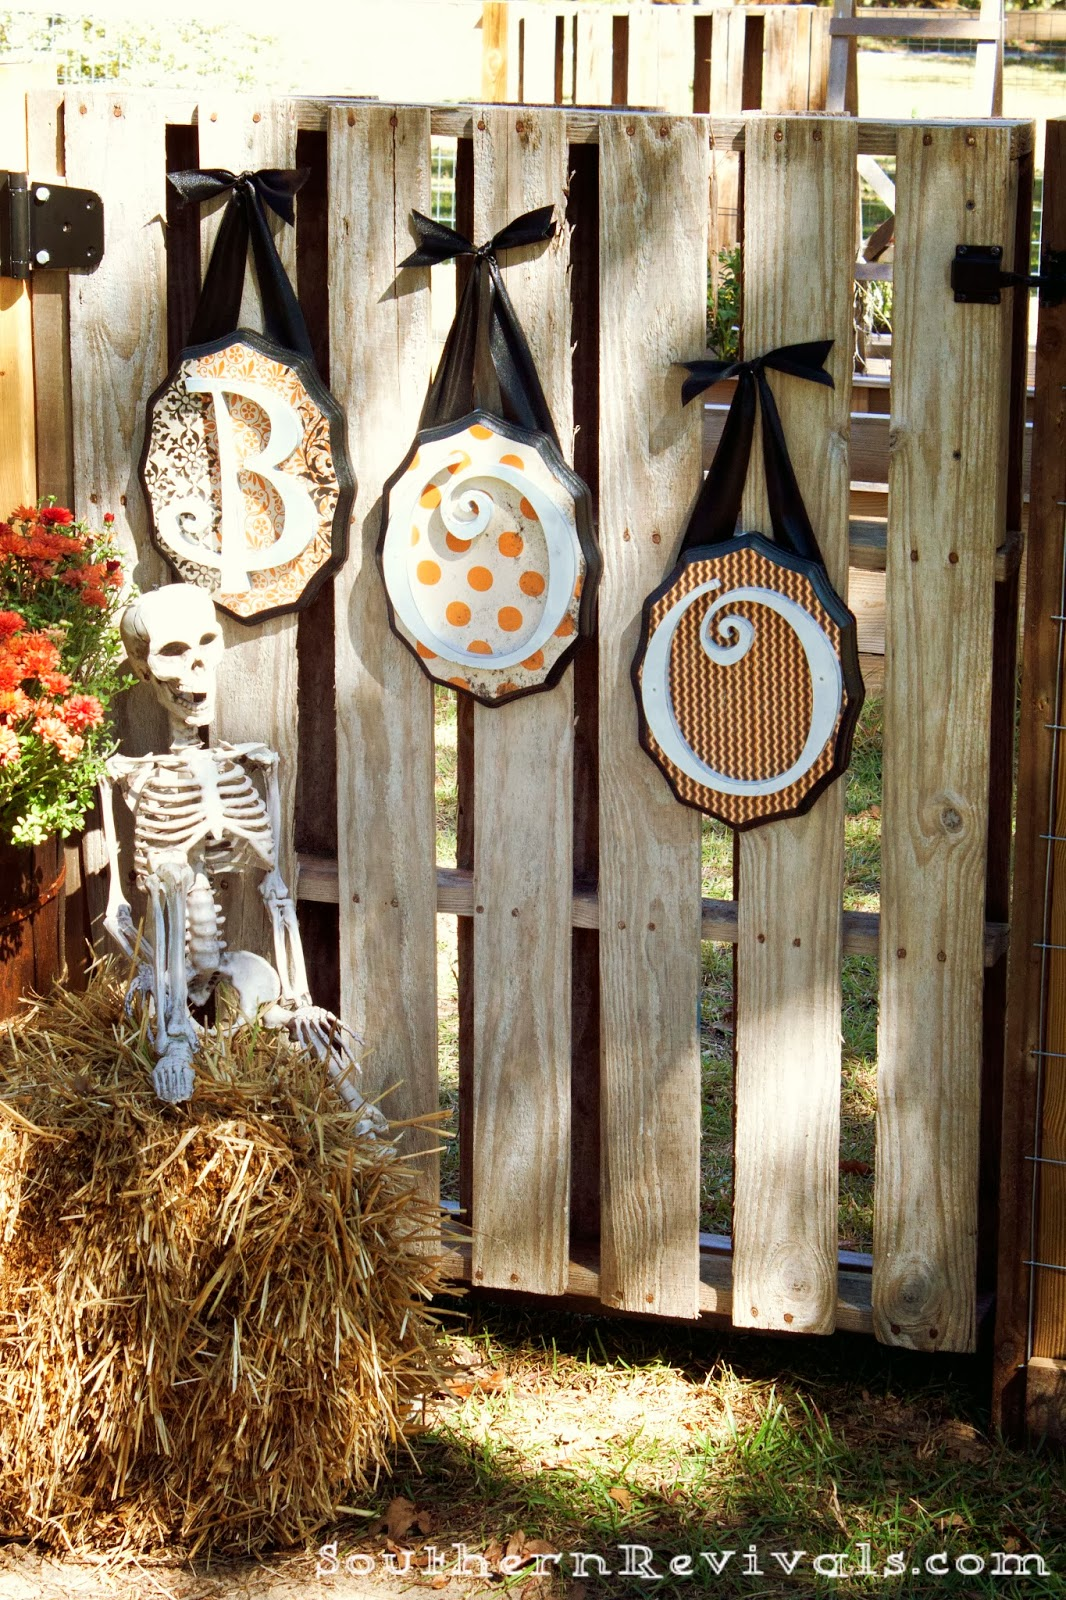 DIY Wooden Halloween Greetings  Southern Revivals